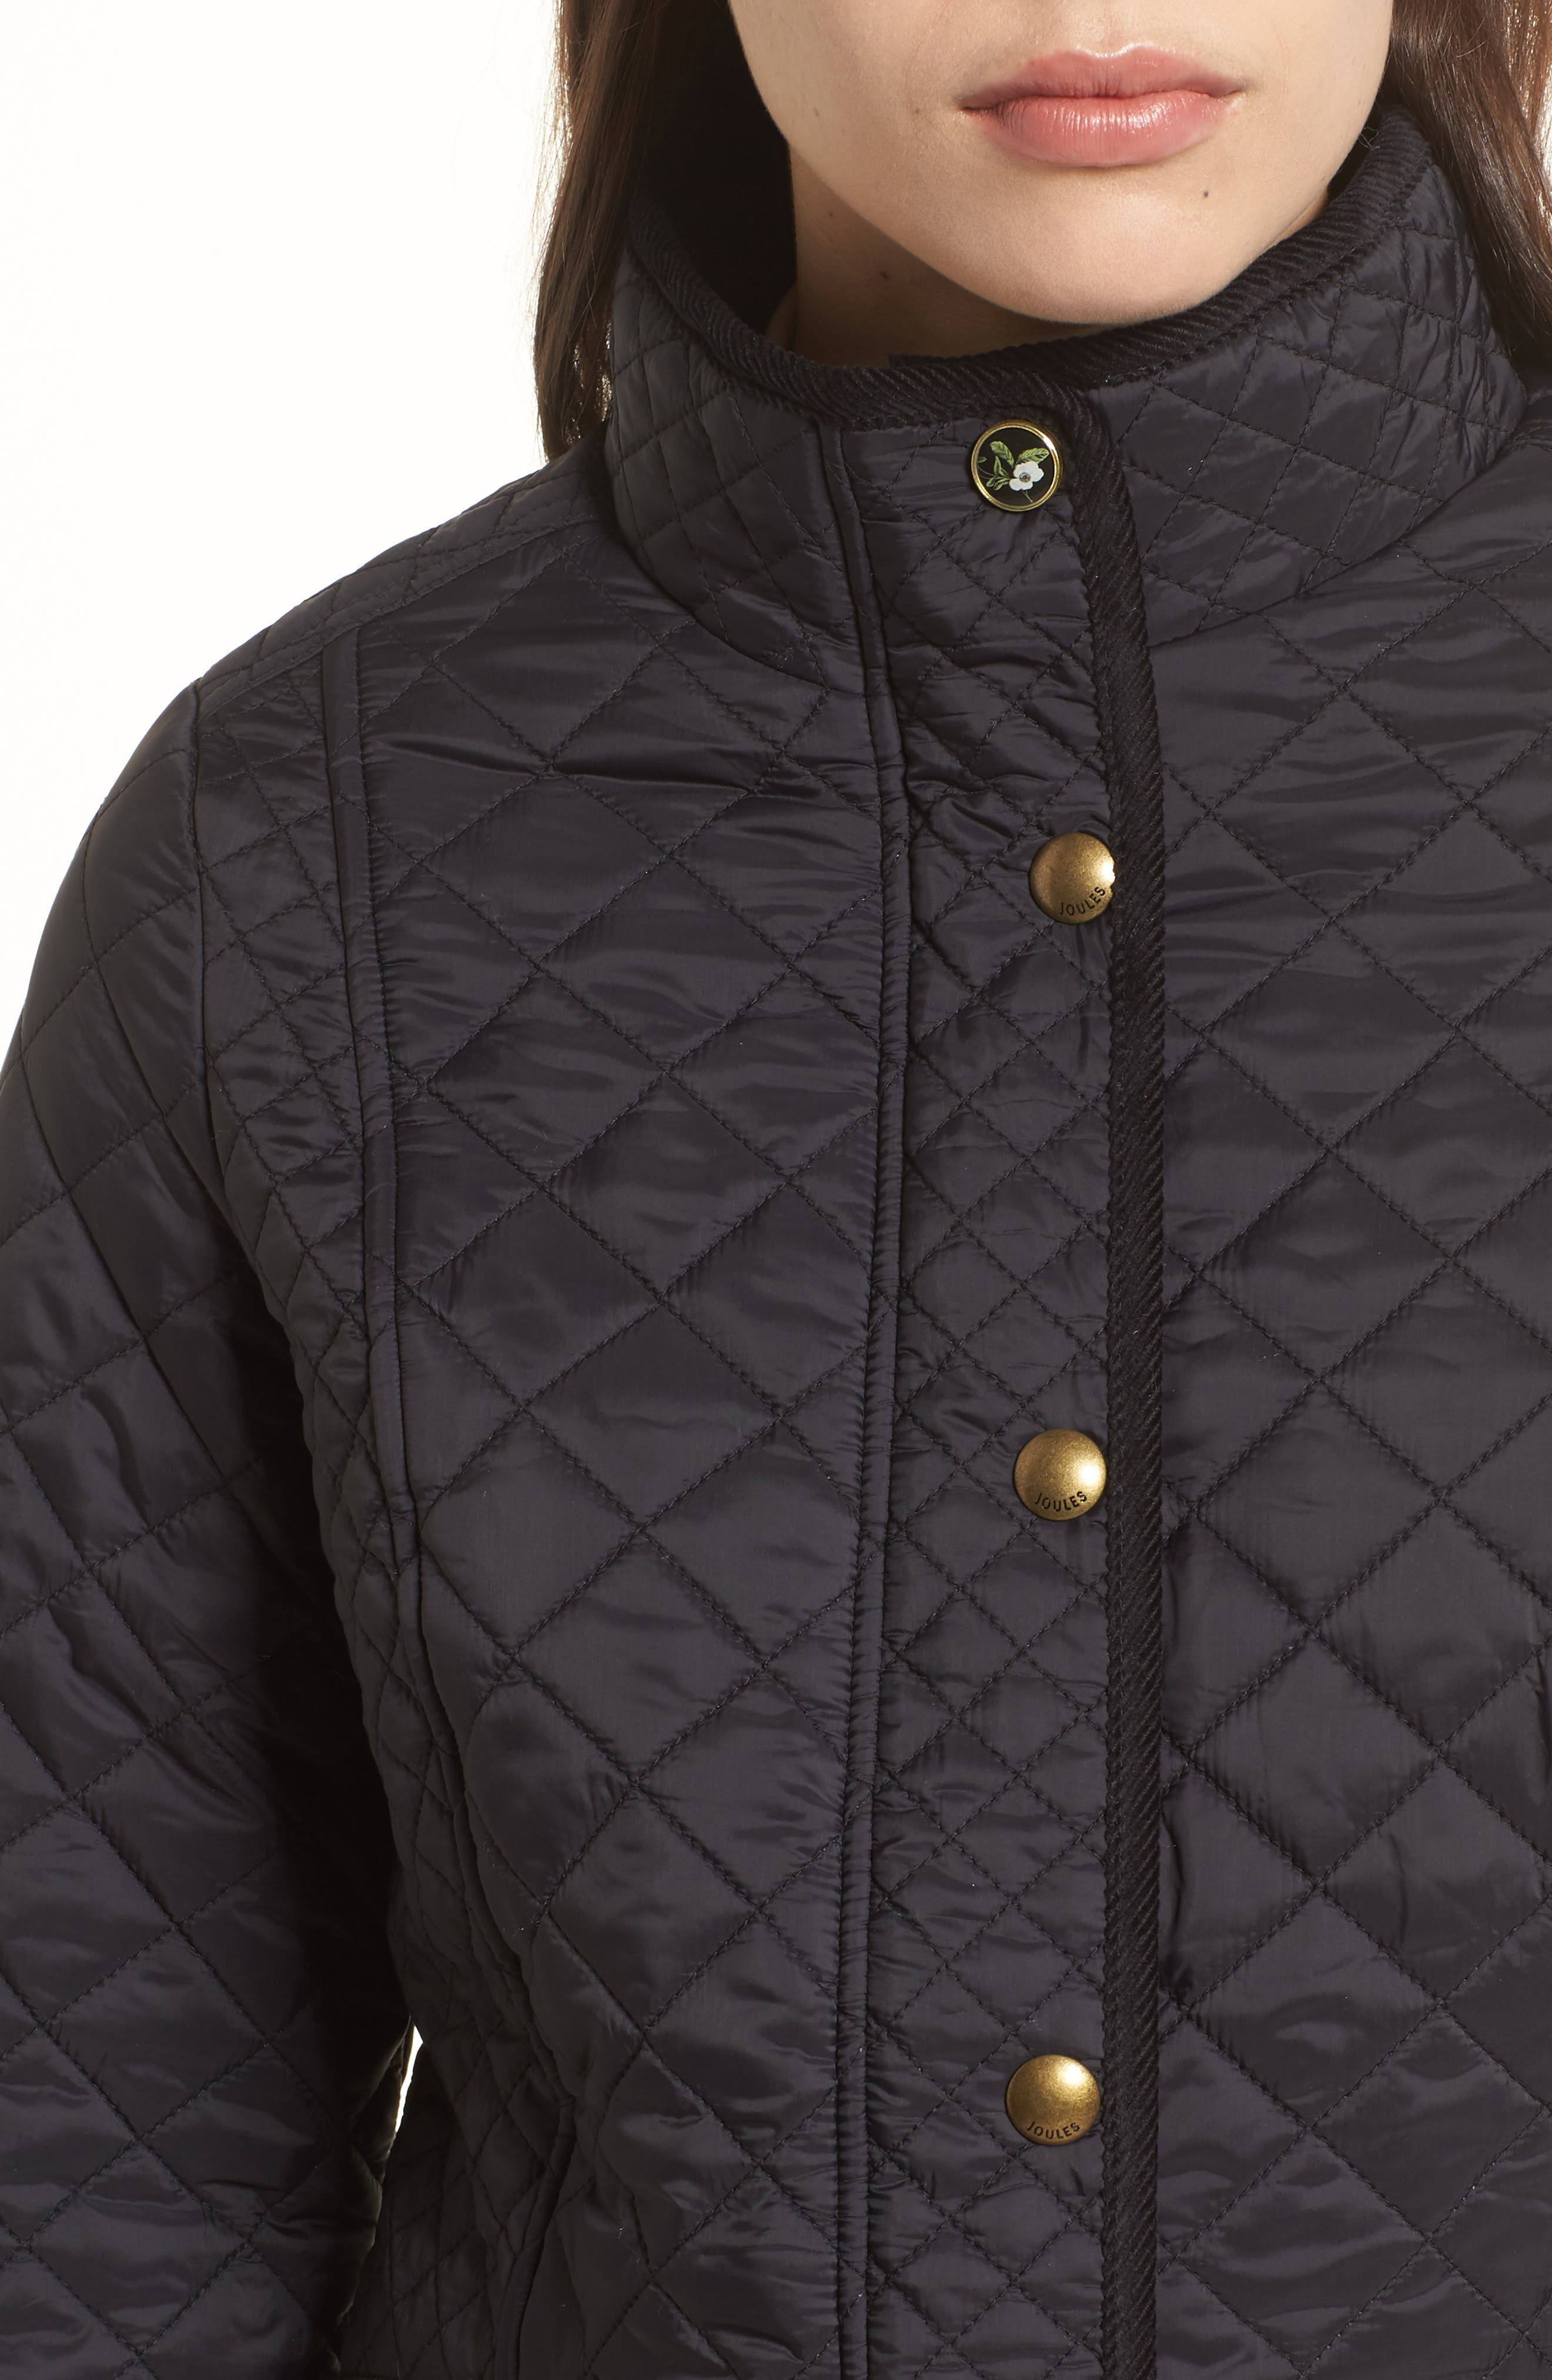 Warm Welcome Quilted Jacket,                             Alternate thumbnail 4, color,                             Black